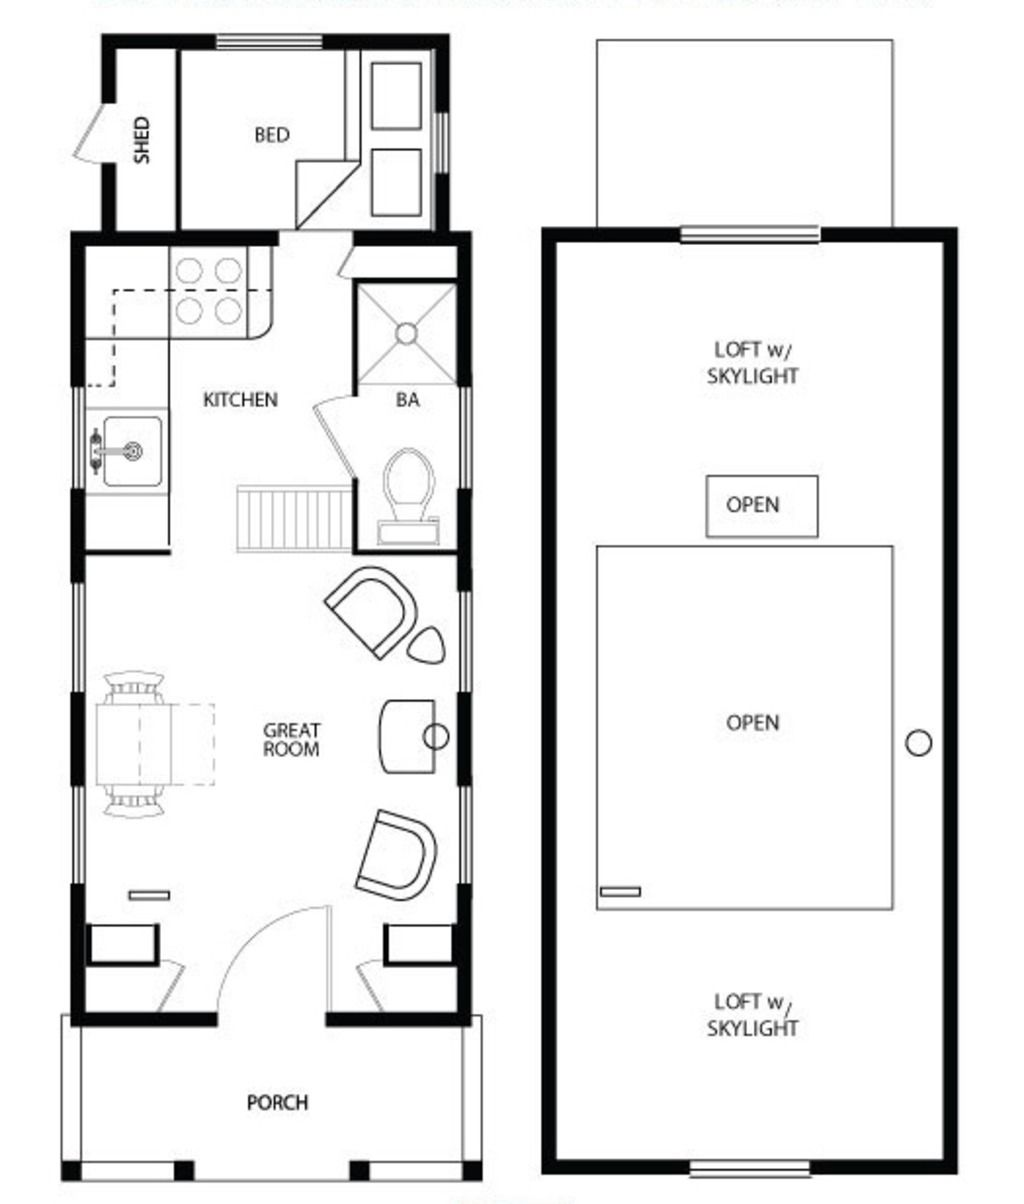 Incredible 17 Best Images About Tiny House Floor Plans On Pinterest Tiny Largest Home Design Picture Inspirations Pitcheantrous